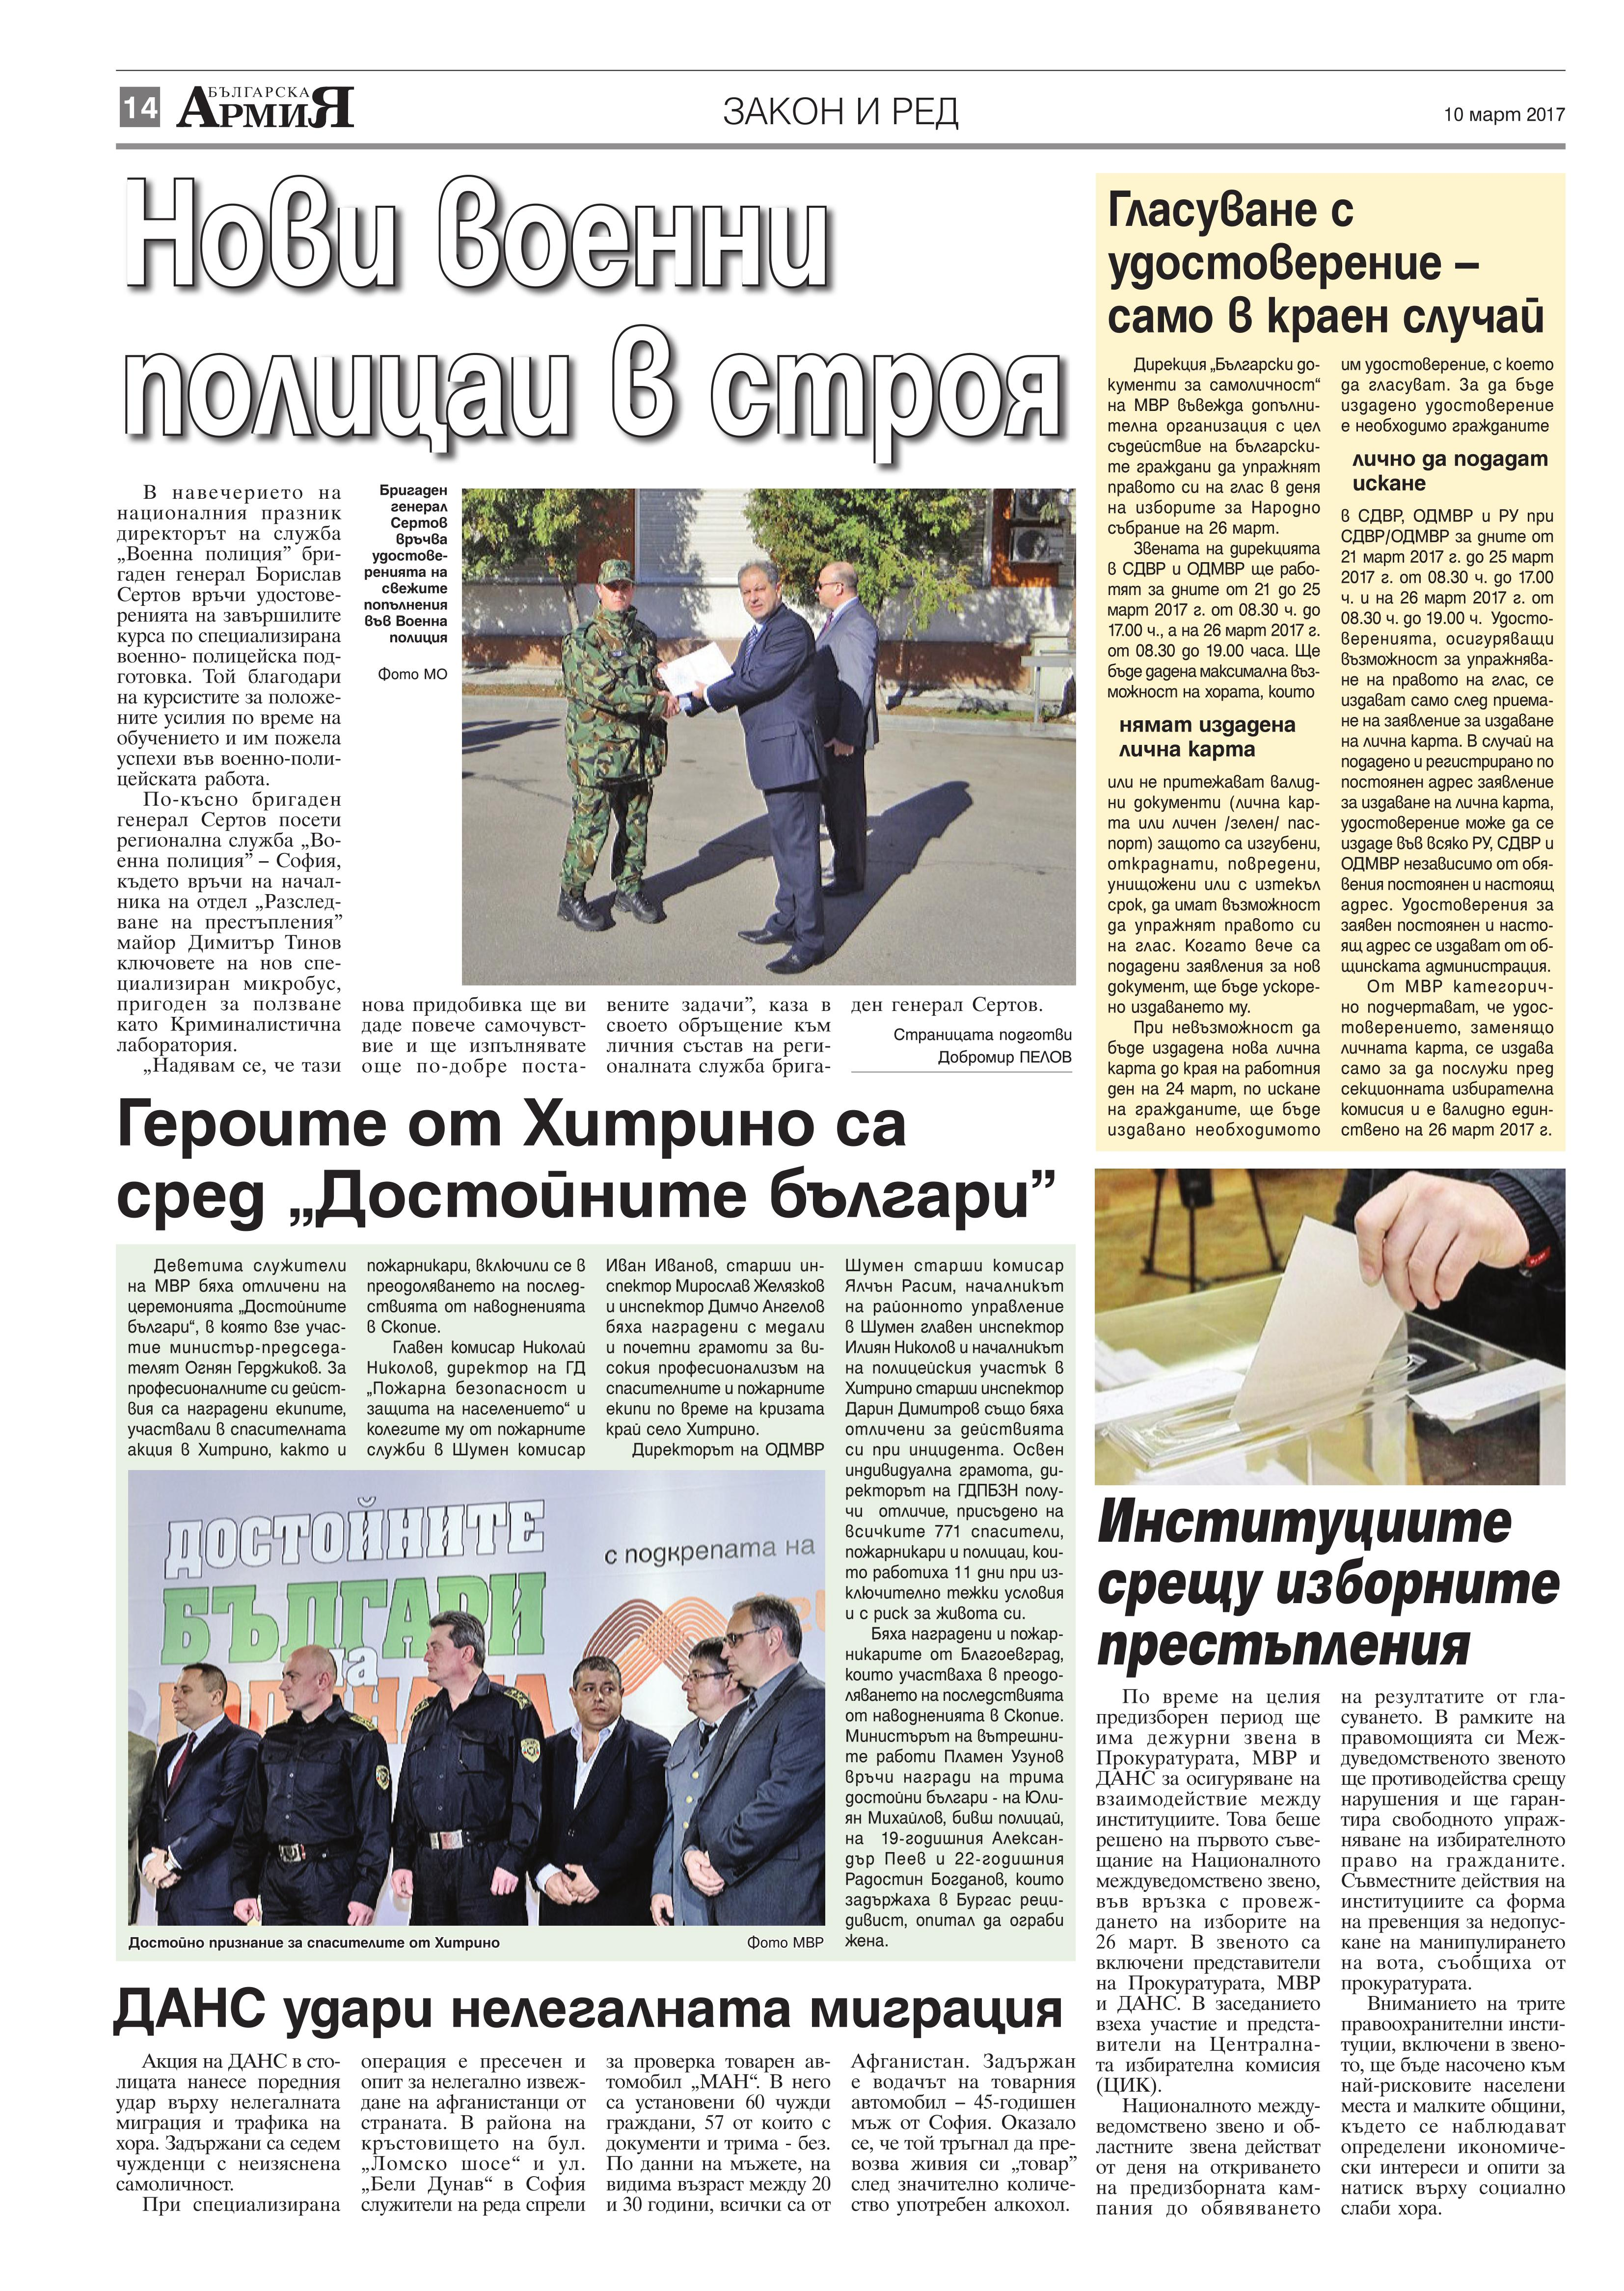 https://www.armymedia.bg/wp-content/uploads/2015/06/14.page1_-16.jpg